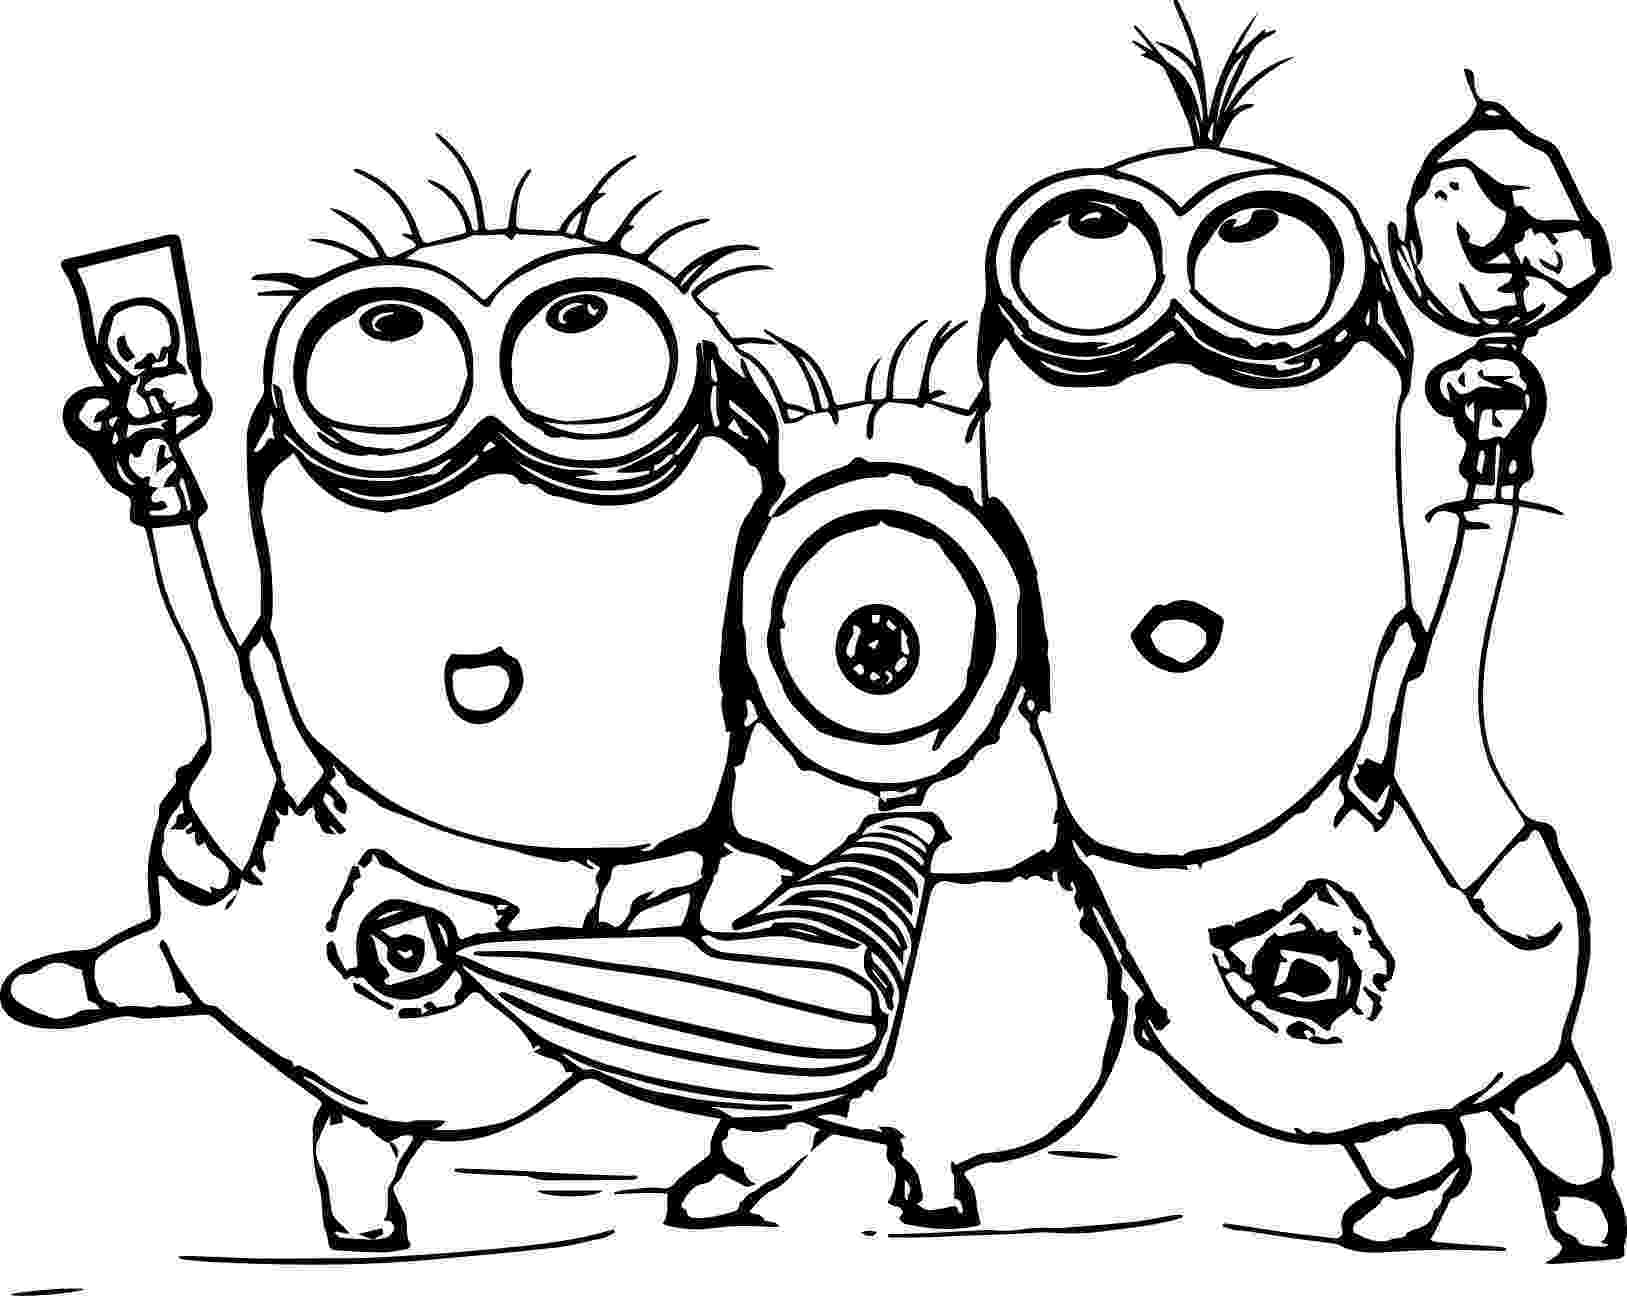 printable colouring pages minions minion coloring pages best coloring pages for kids colouring printable minions pages